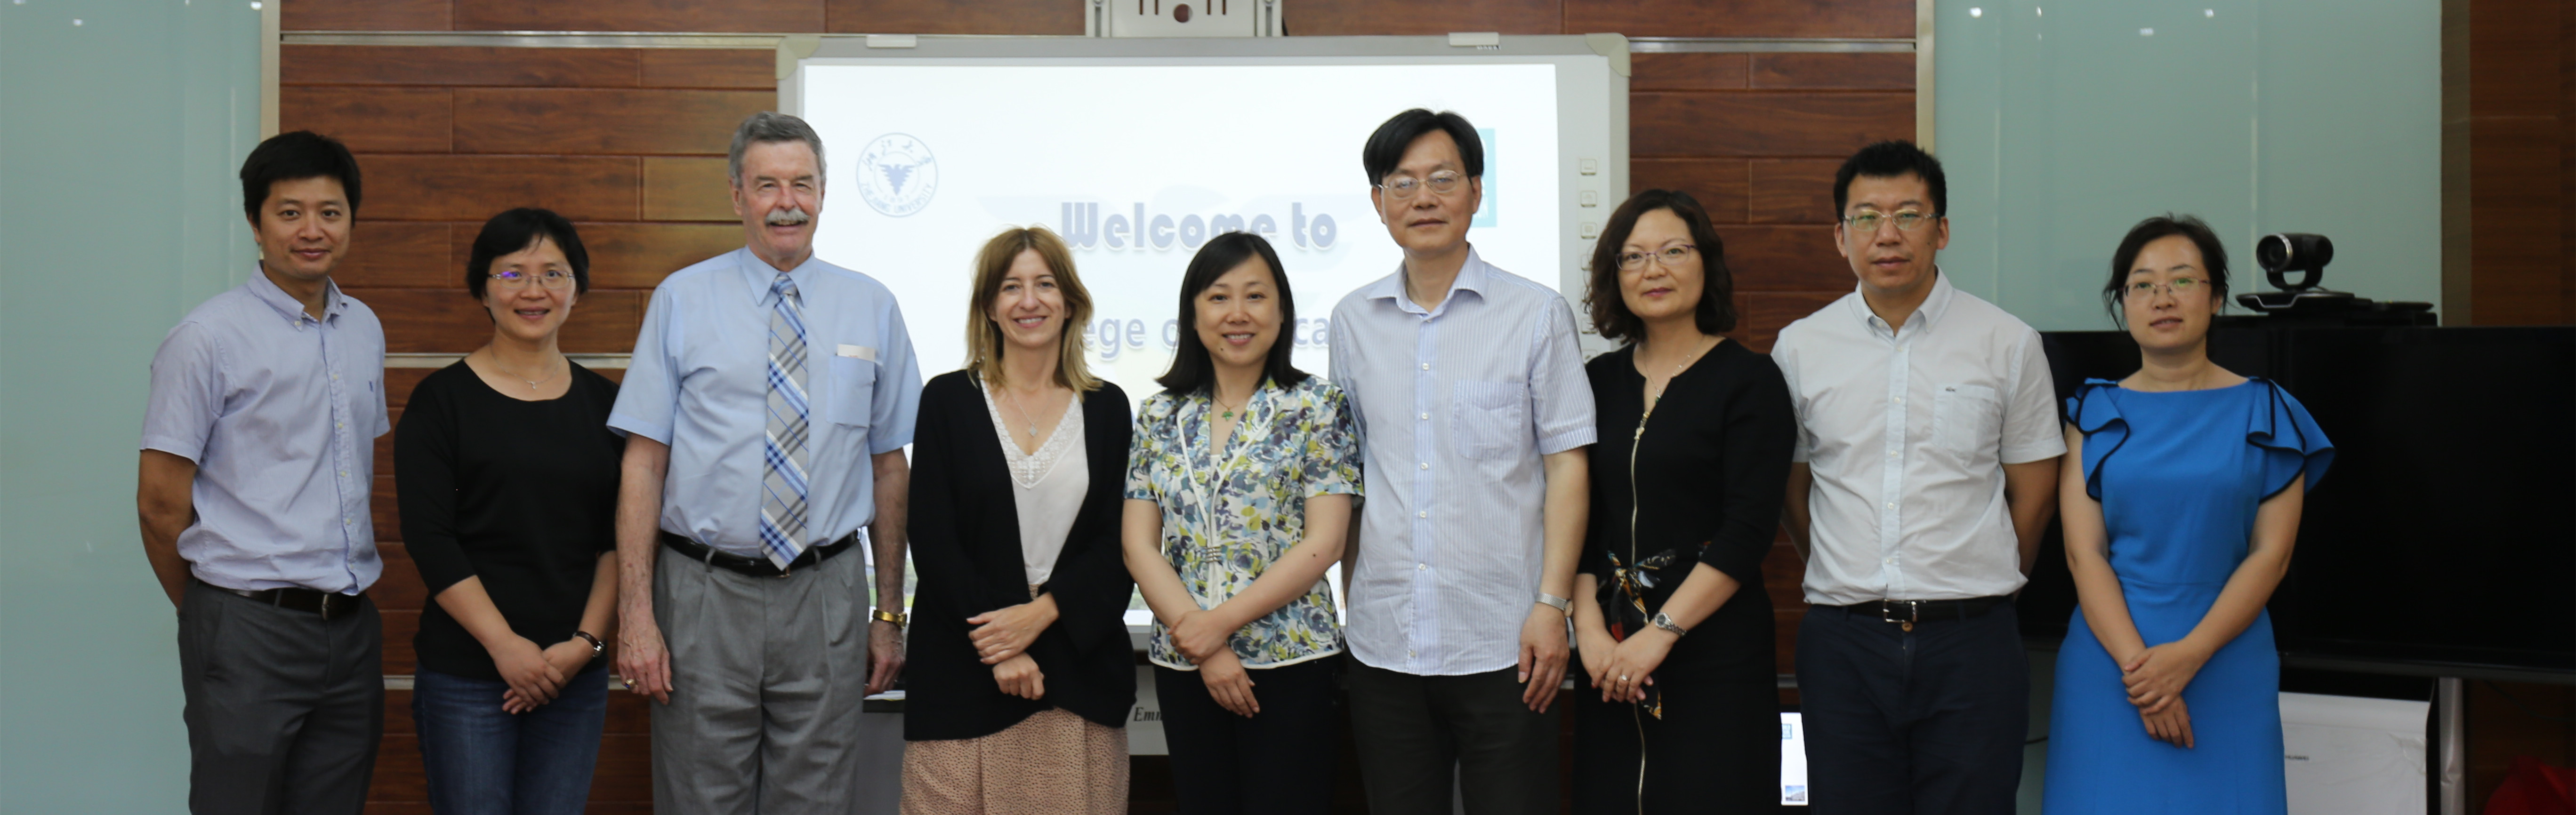 World Leisure Organization Representatives Visit ZJU's College of Education for On-site Assessment of WLCE